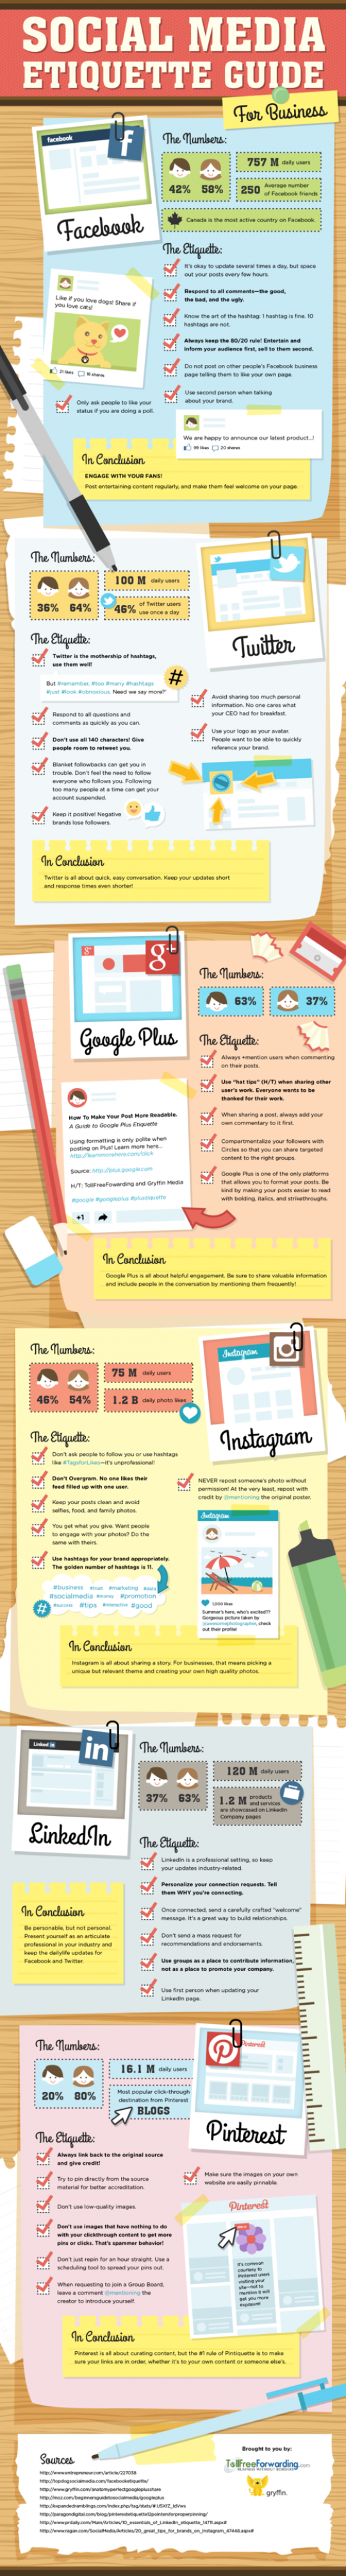 Do You Know Your Social Media Etiquette Today?